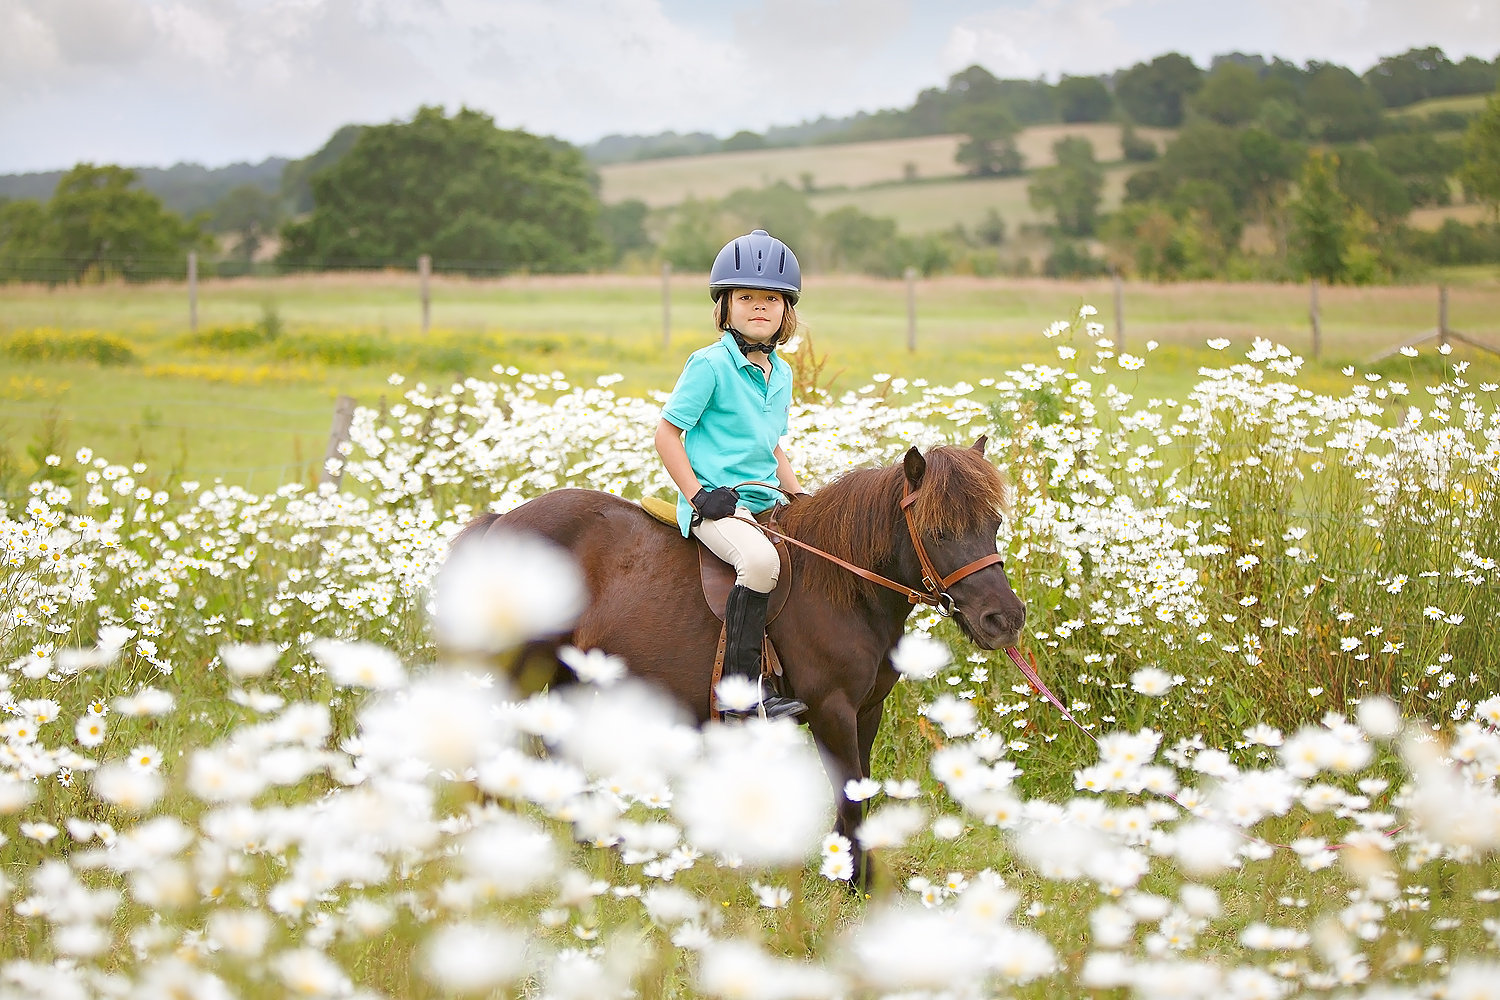 boy sitting on shetland pony daisy field